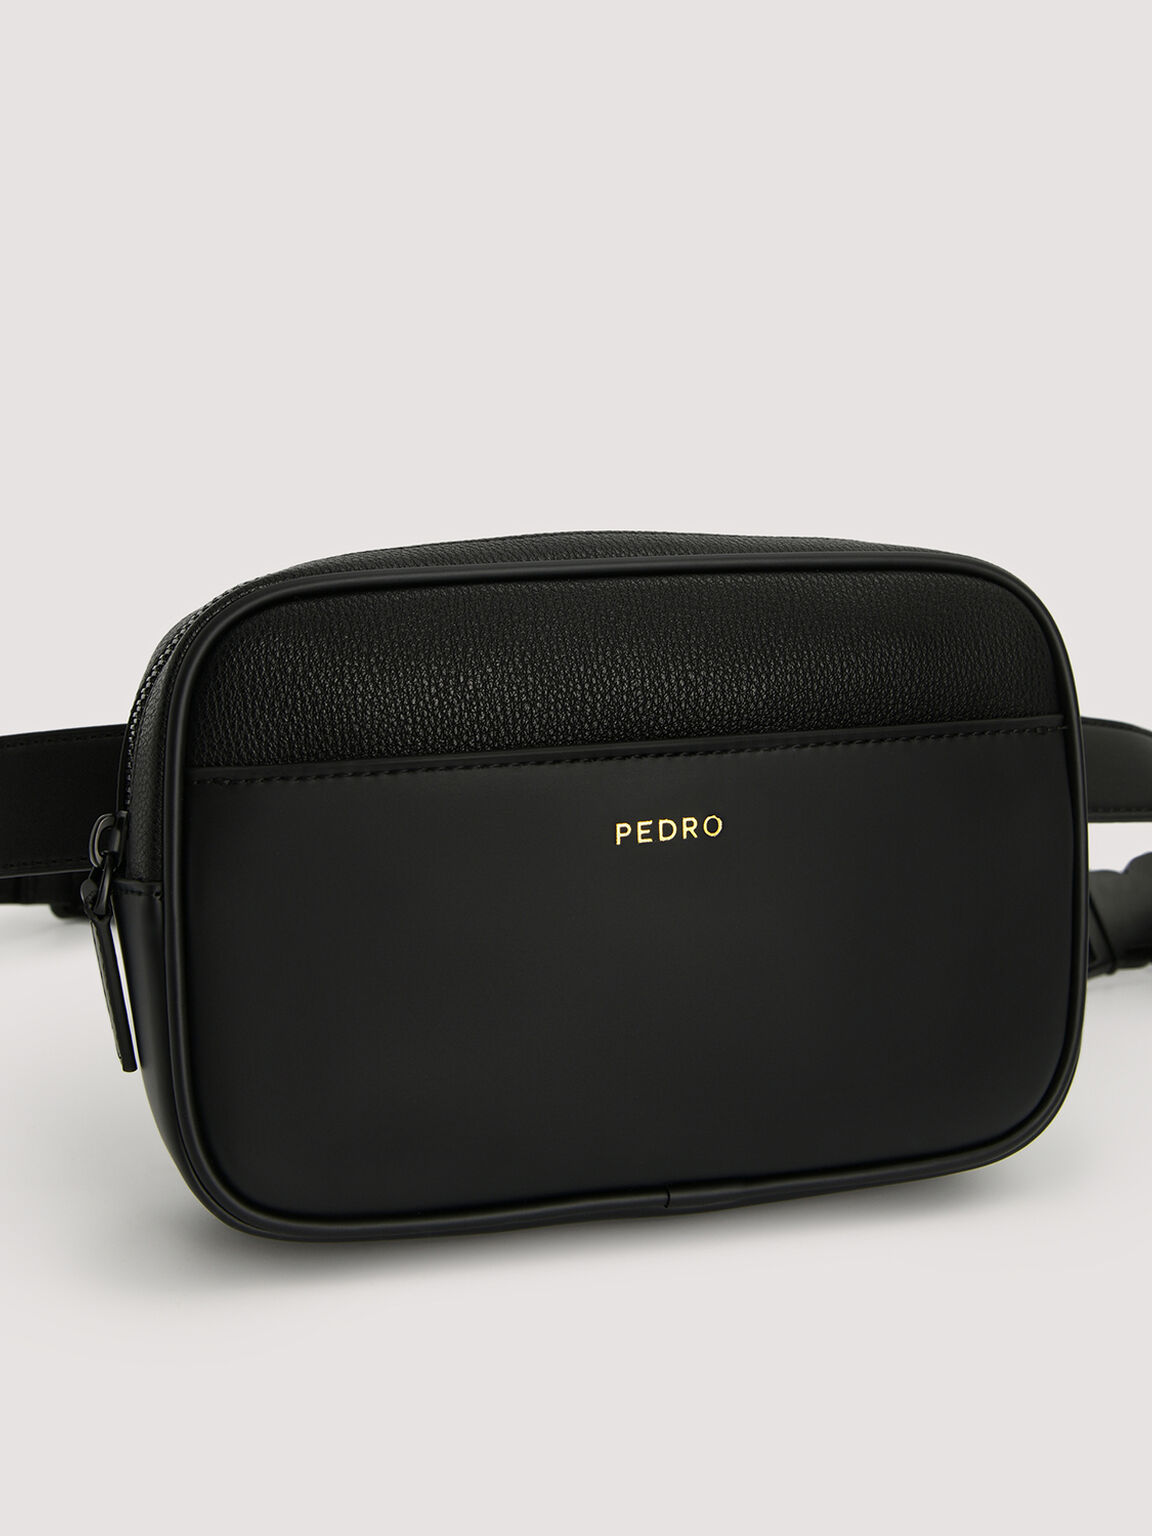 Two-Way Sling Pouch, Black, hi-res